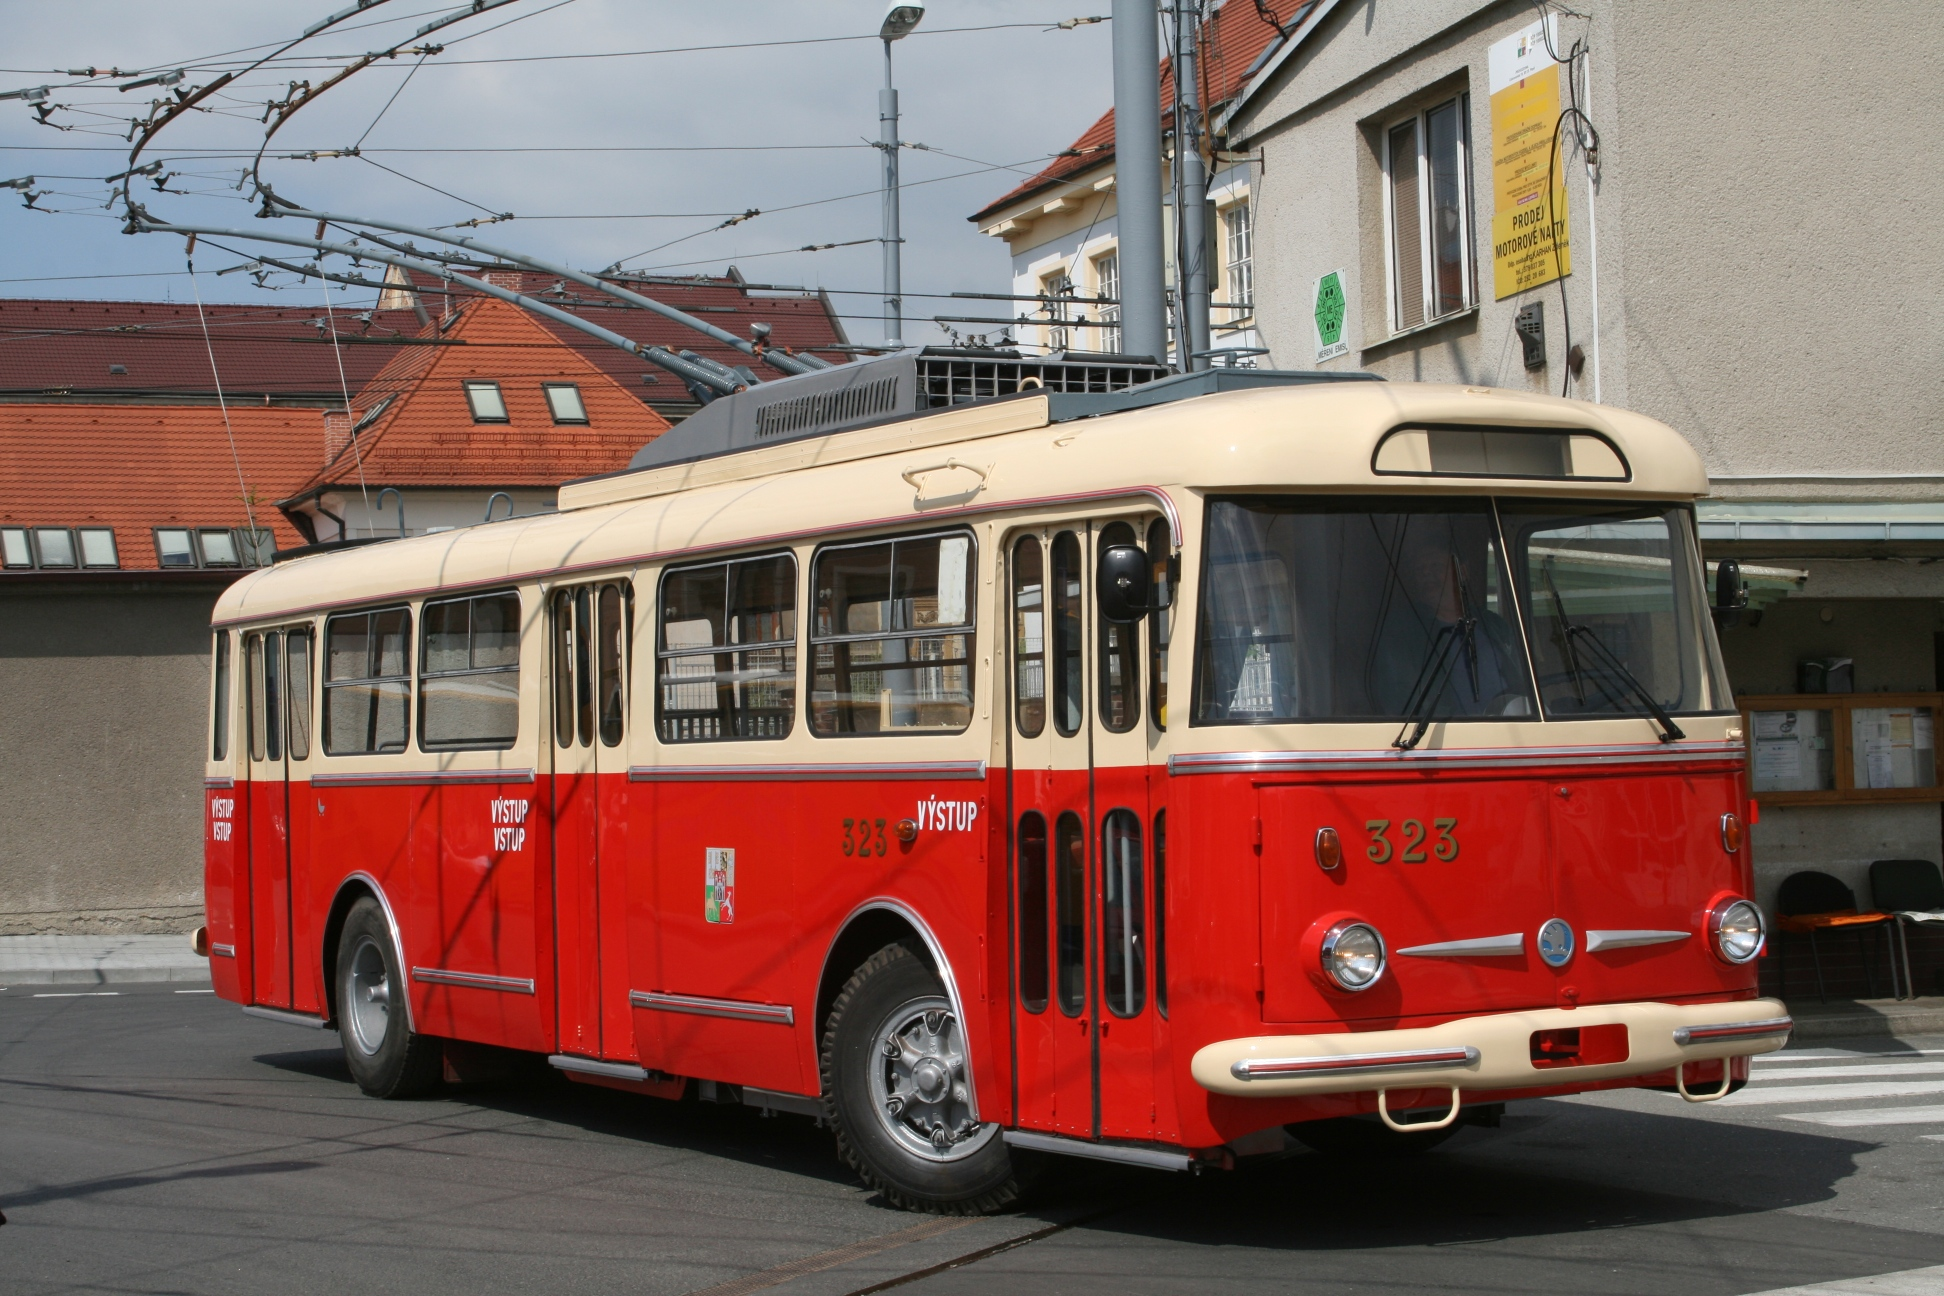 ŠKODA 9Tr trolleybus no. 323 from 1979